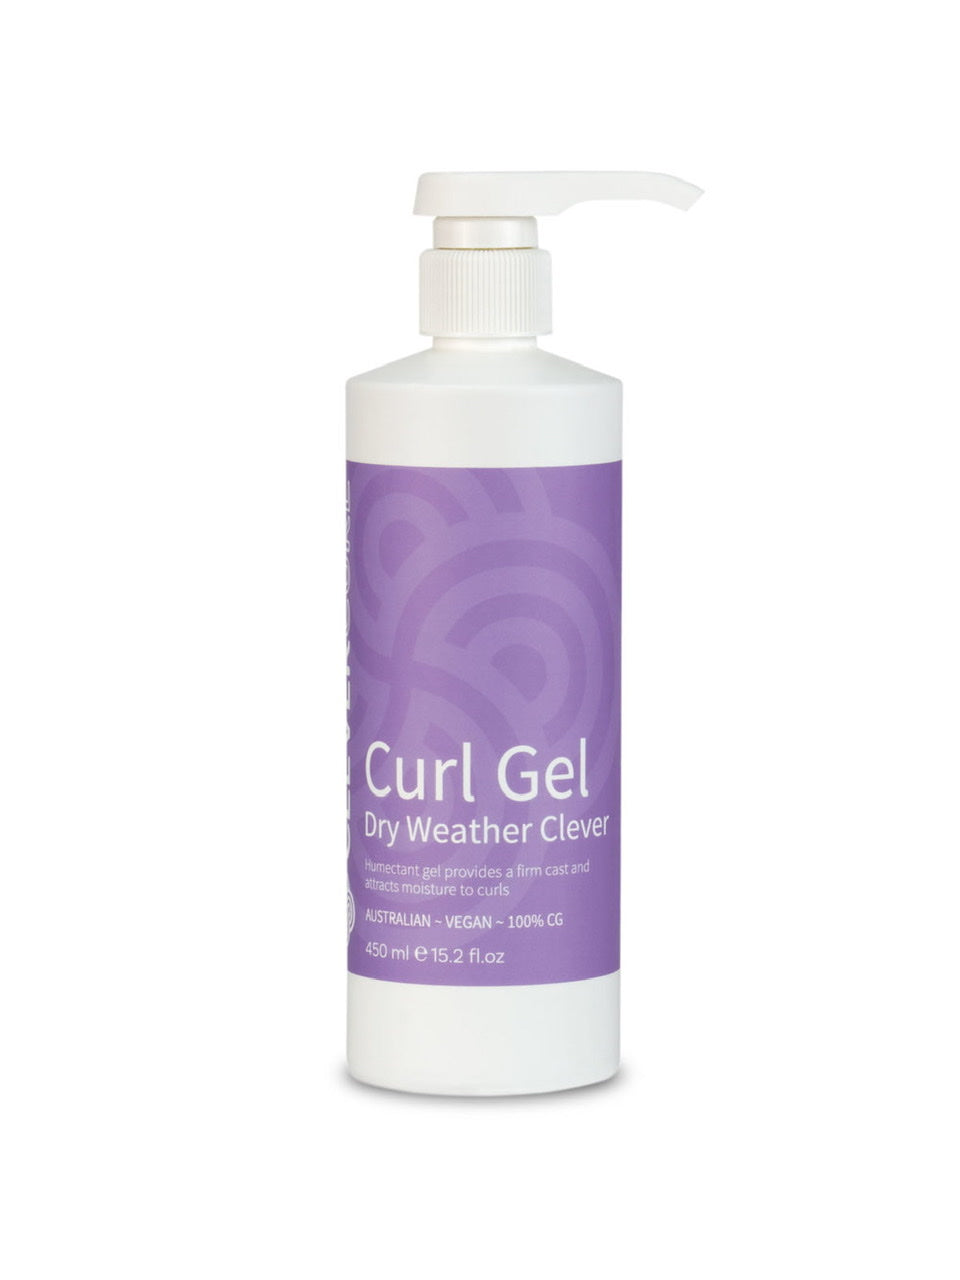 Clever Curl Dry Weather Clever Gel - Harlequin Hair